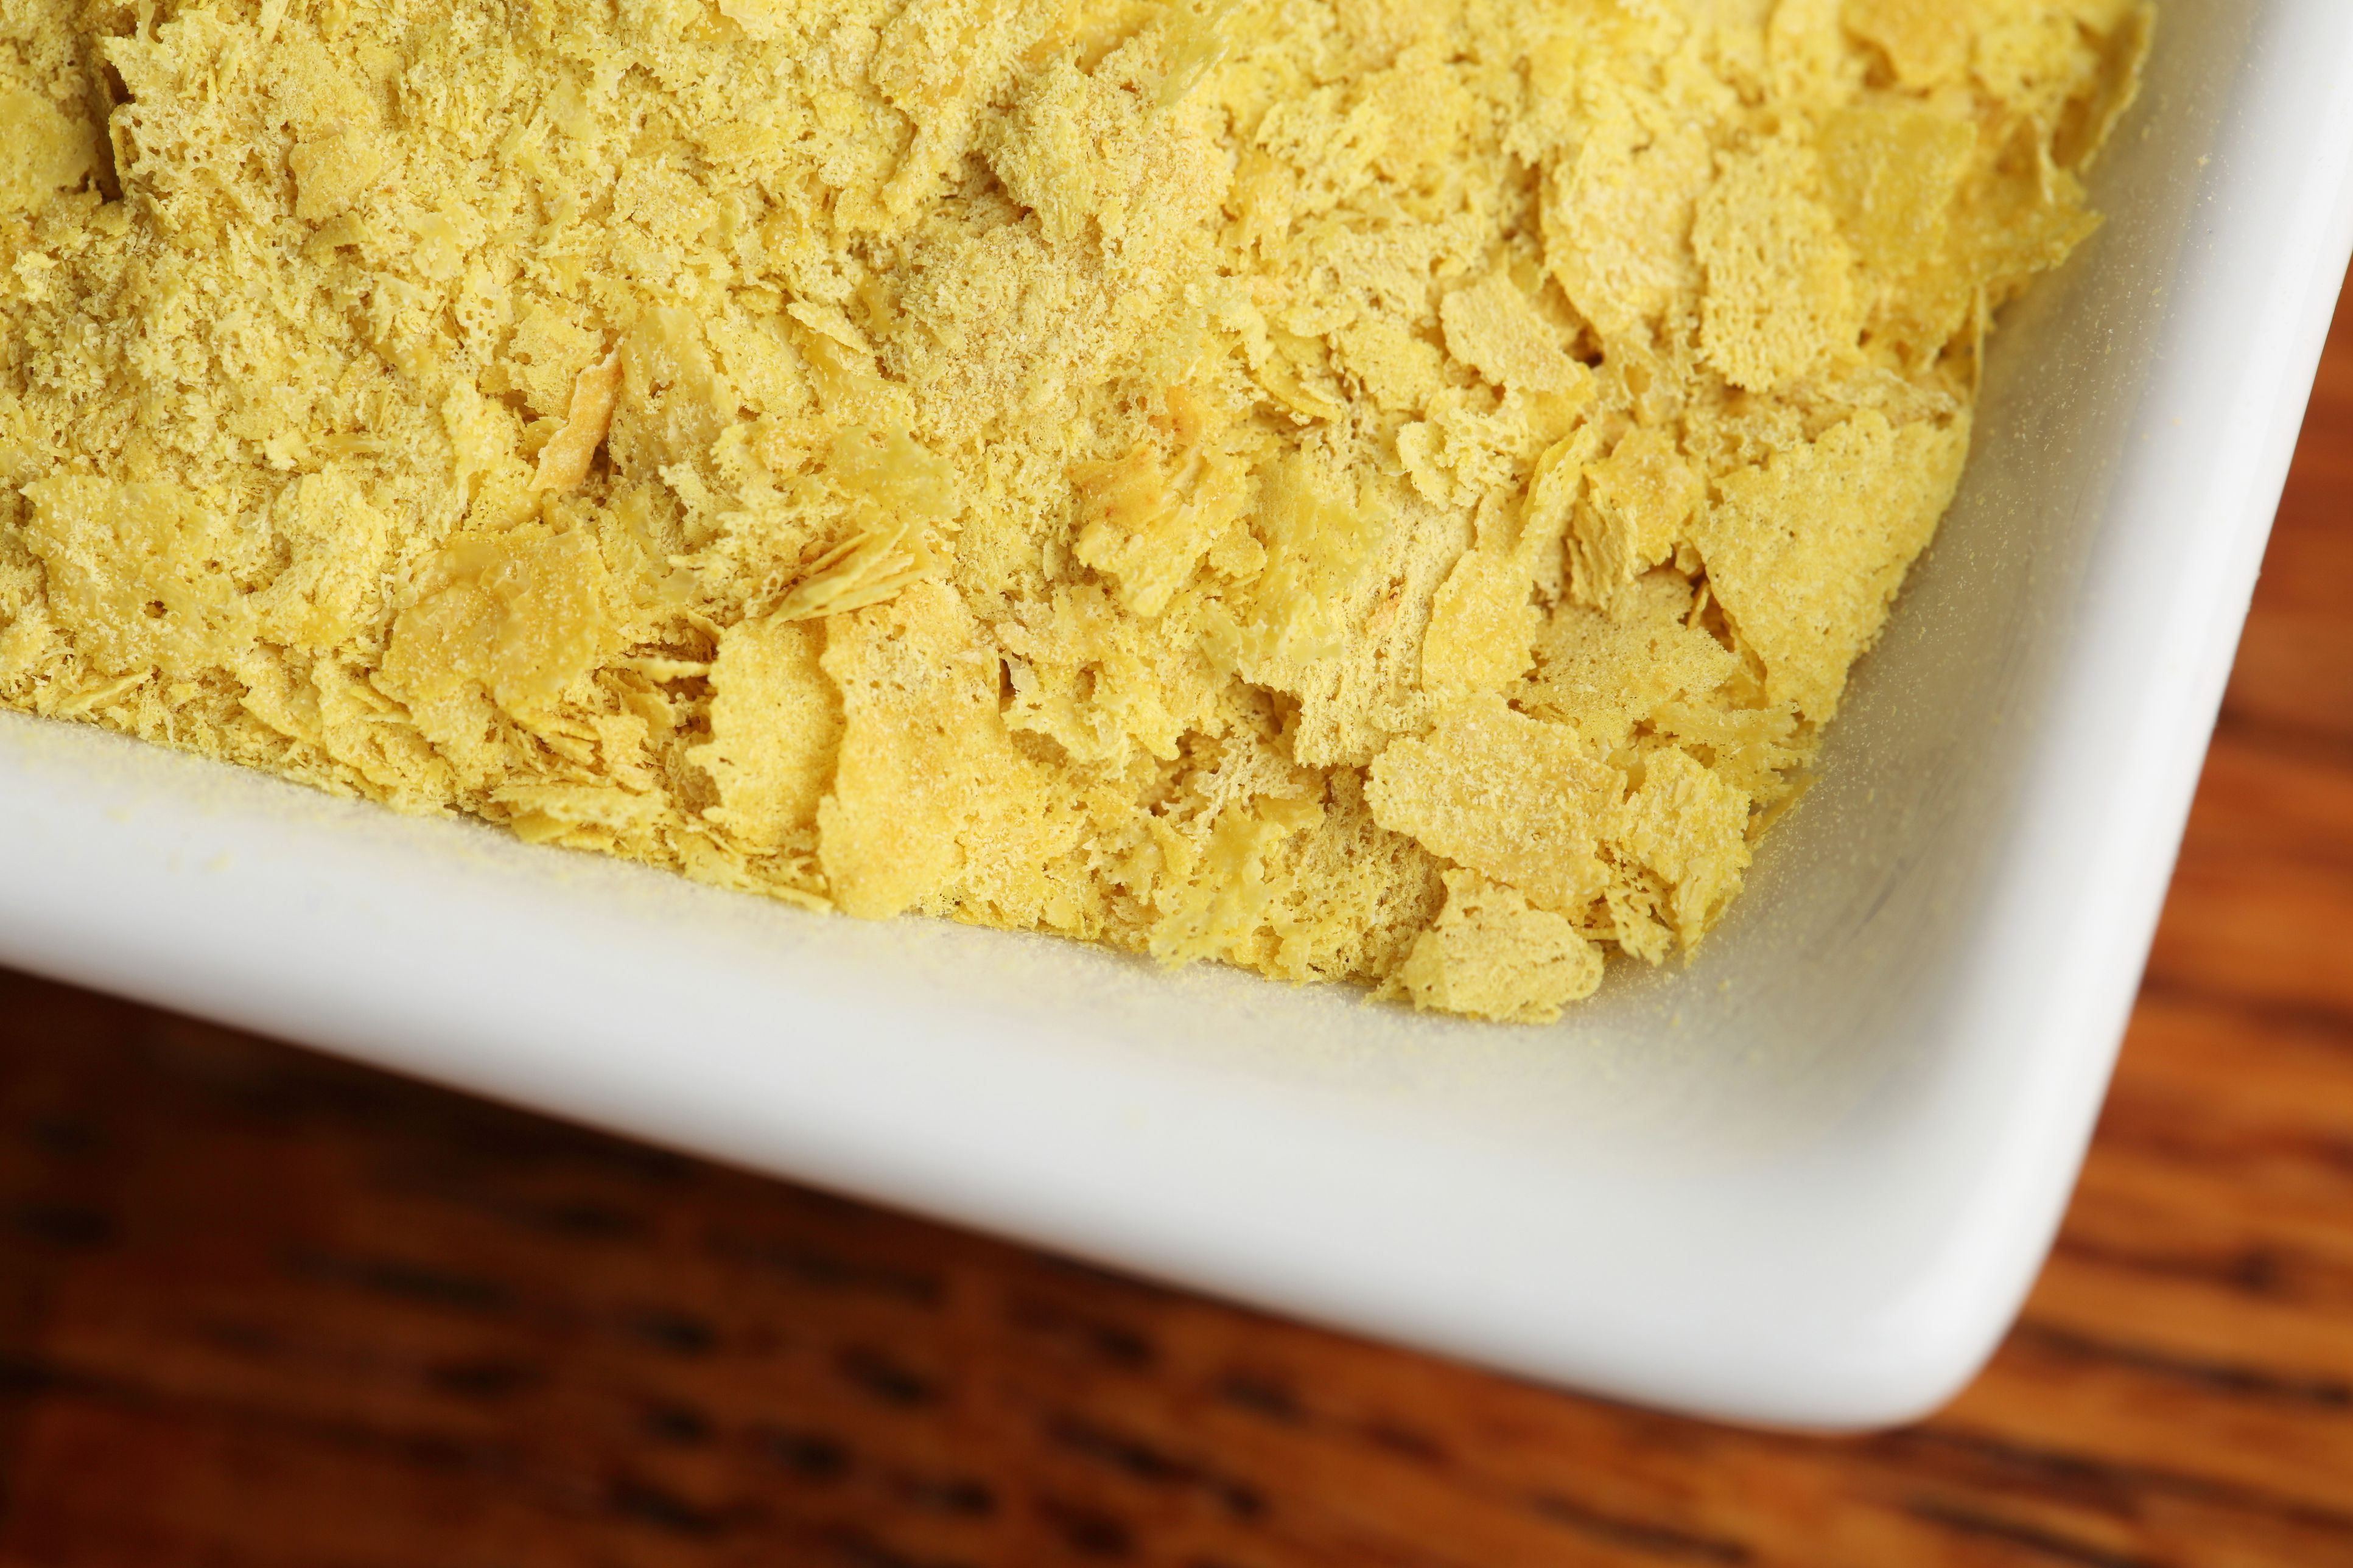 Dish of Nutritional Yeast on Wood